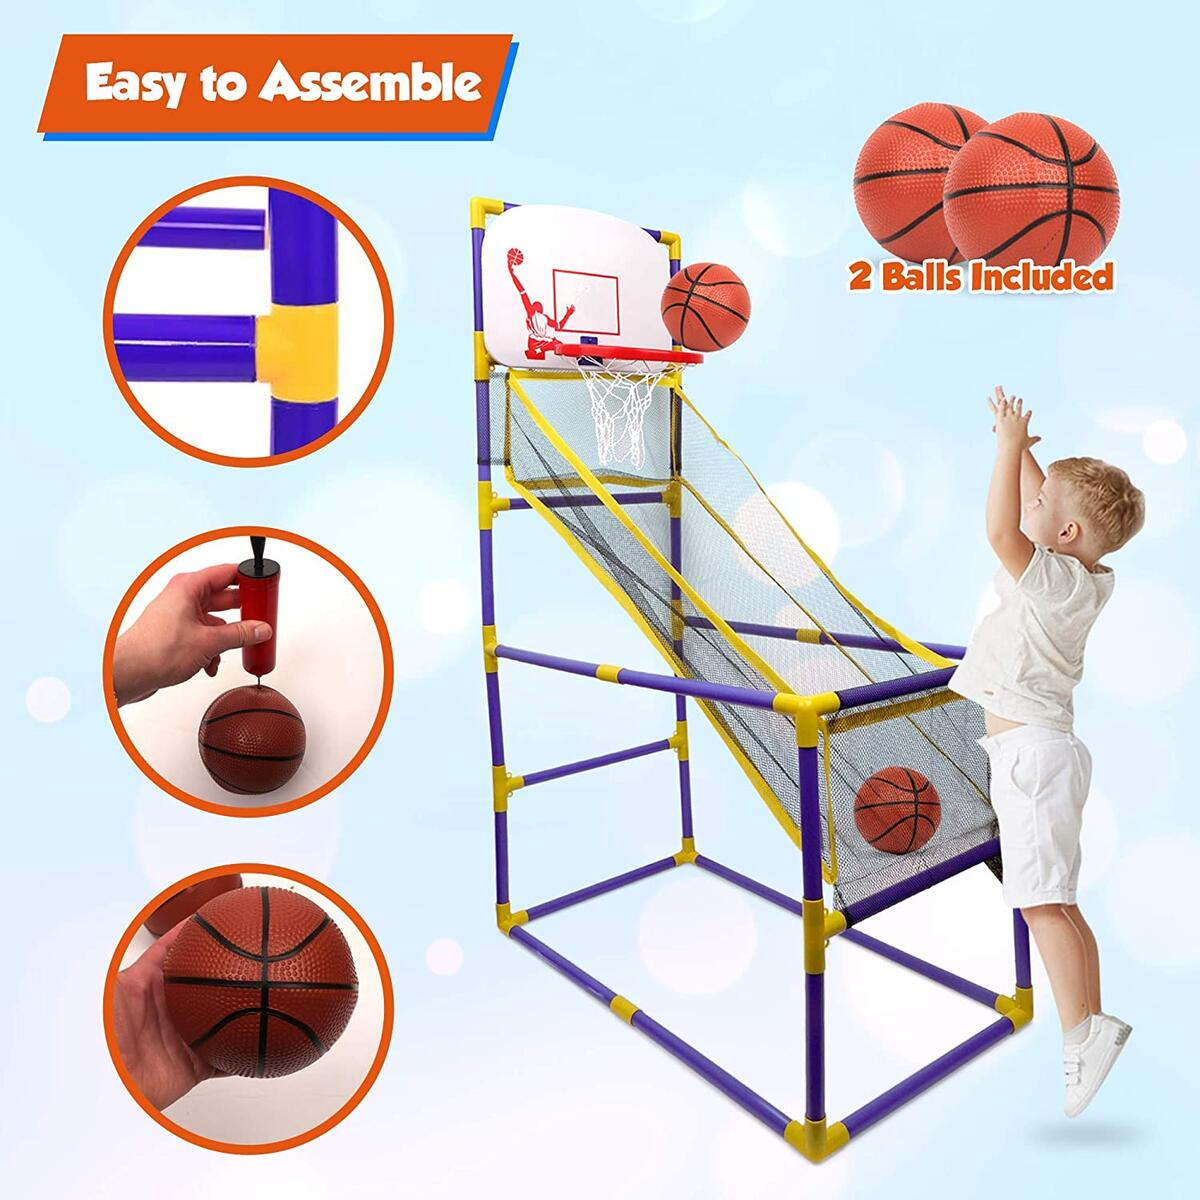 Point Games The Boomer Basketball Hoop Game, Indoor or Outdoor Arcade Sport Toy, Easy to Install, Fun and Entertaining - Recommended for Ages 3+